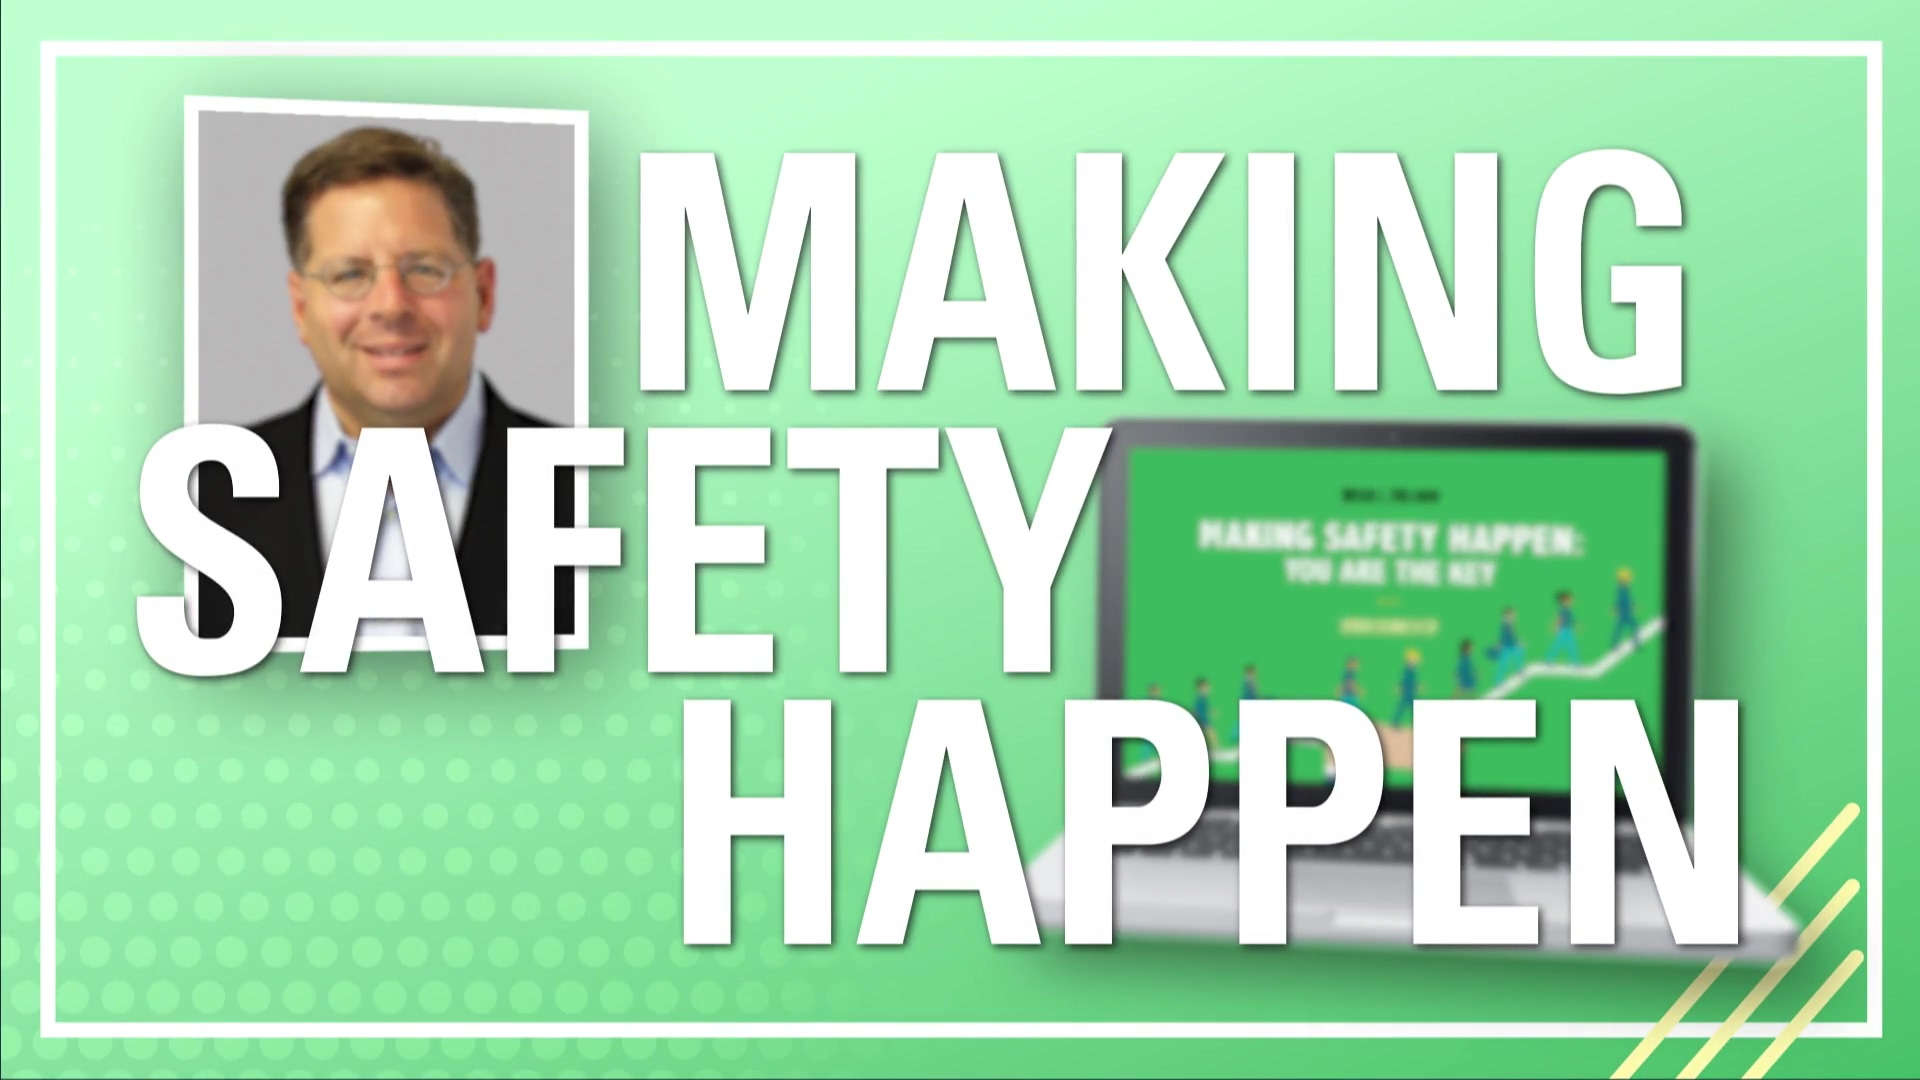 Making Safety Happen Overview